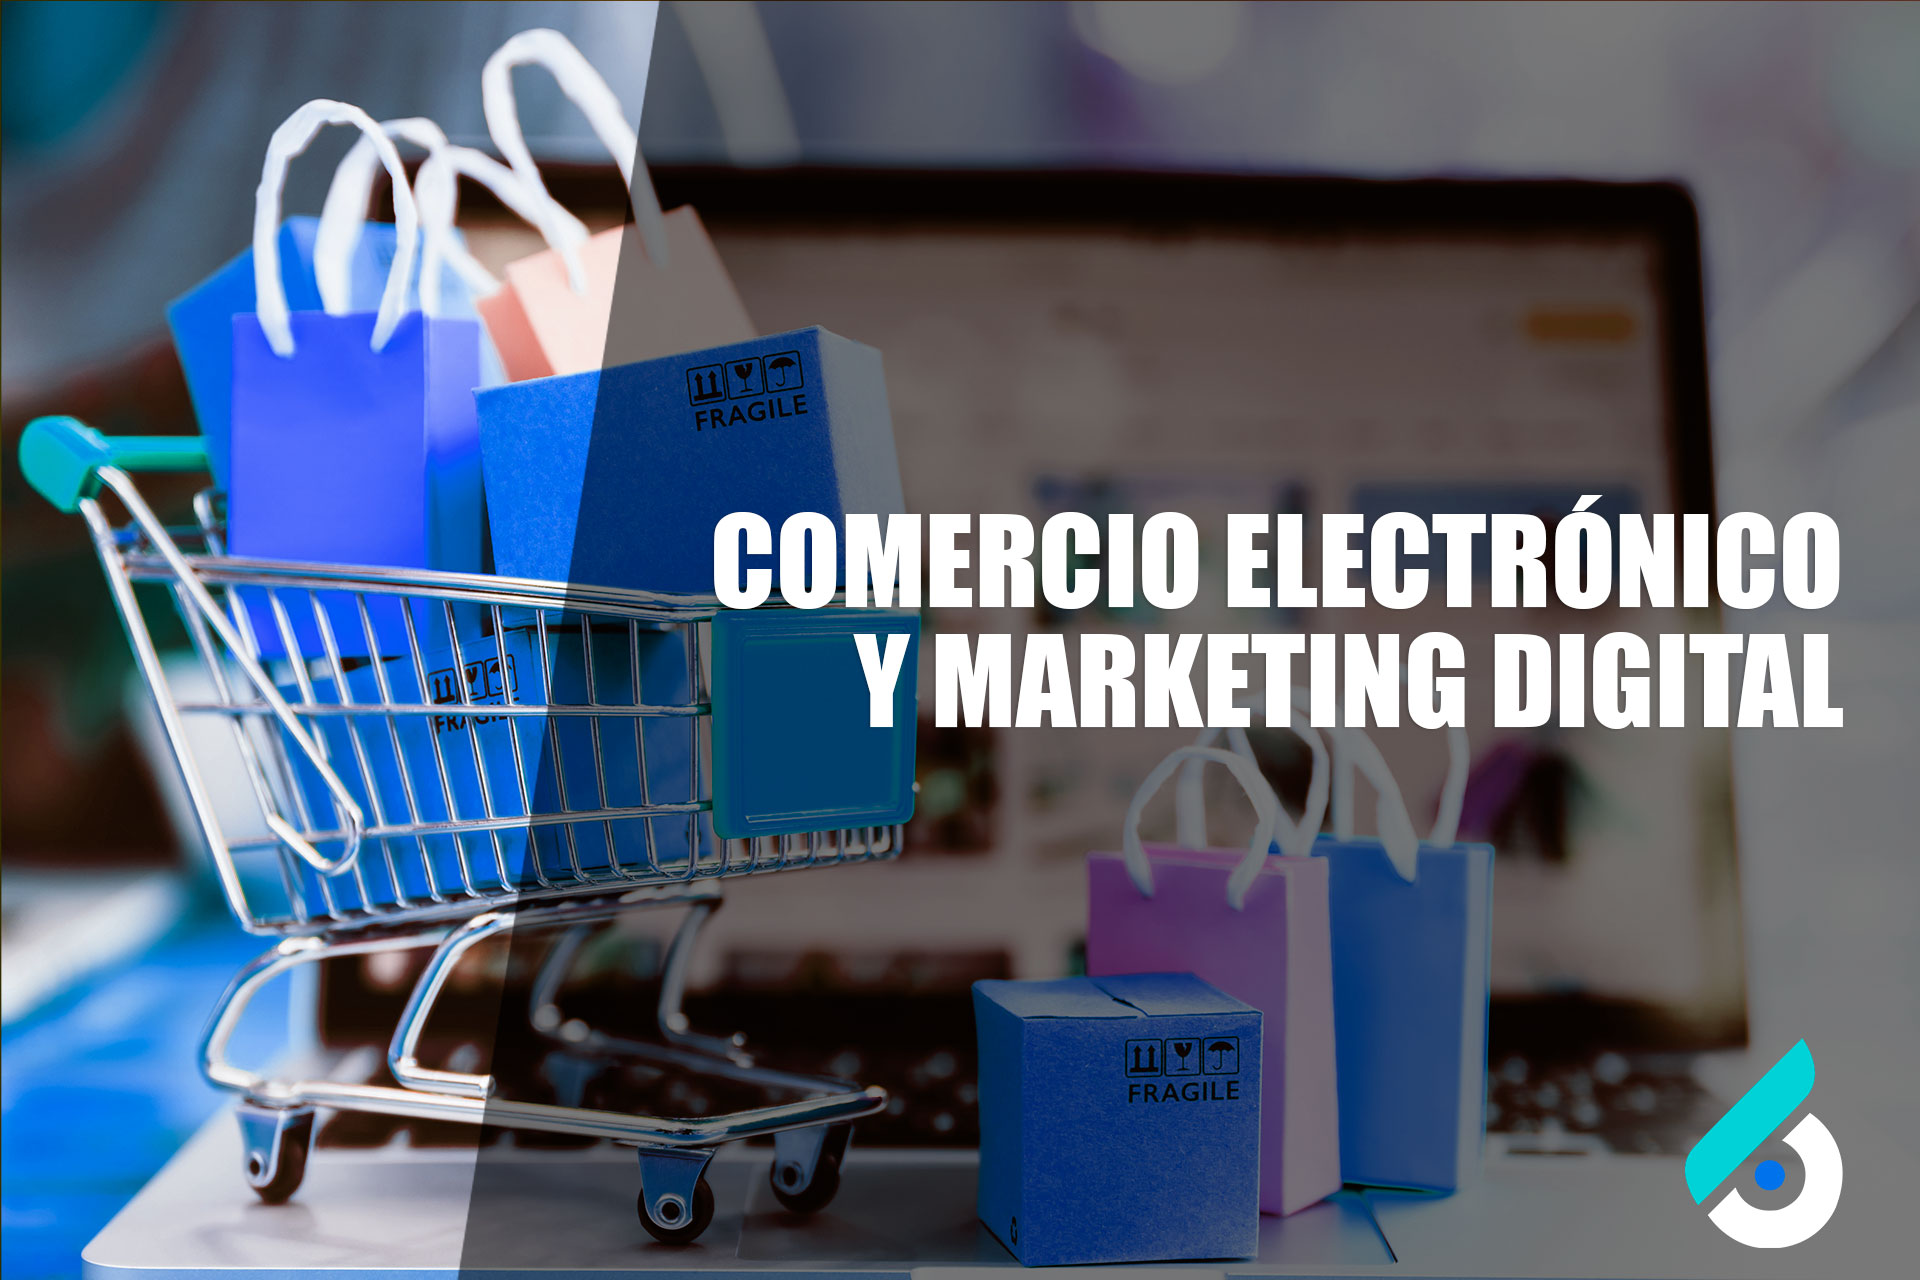 DMIPE-20-01-13-0430-1 | Comercio Electrónico y Marketing Digital